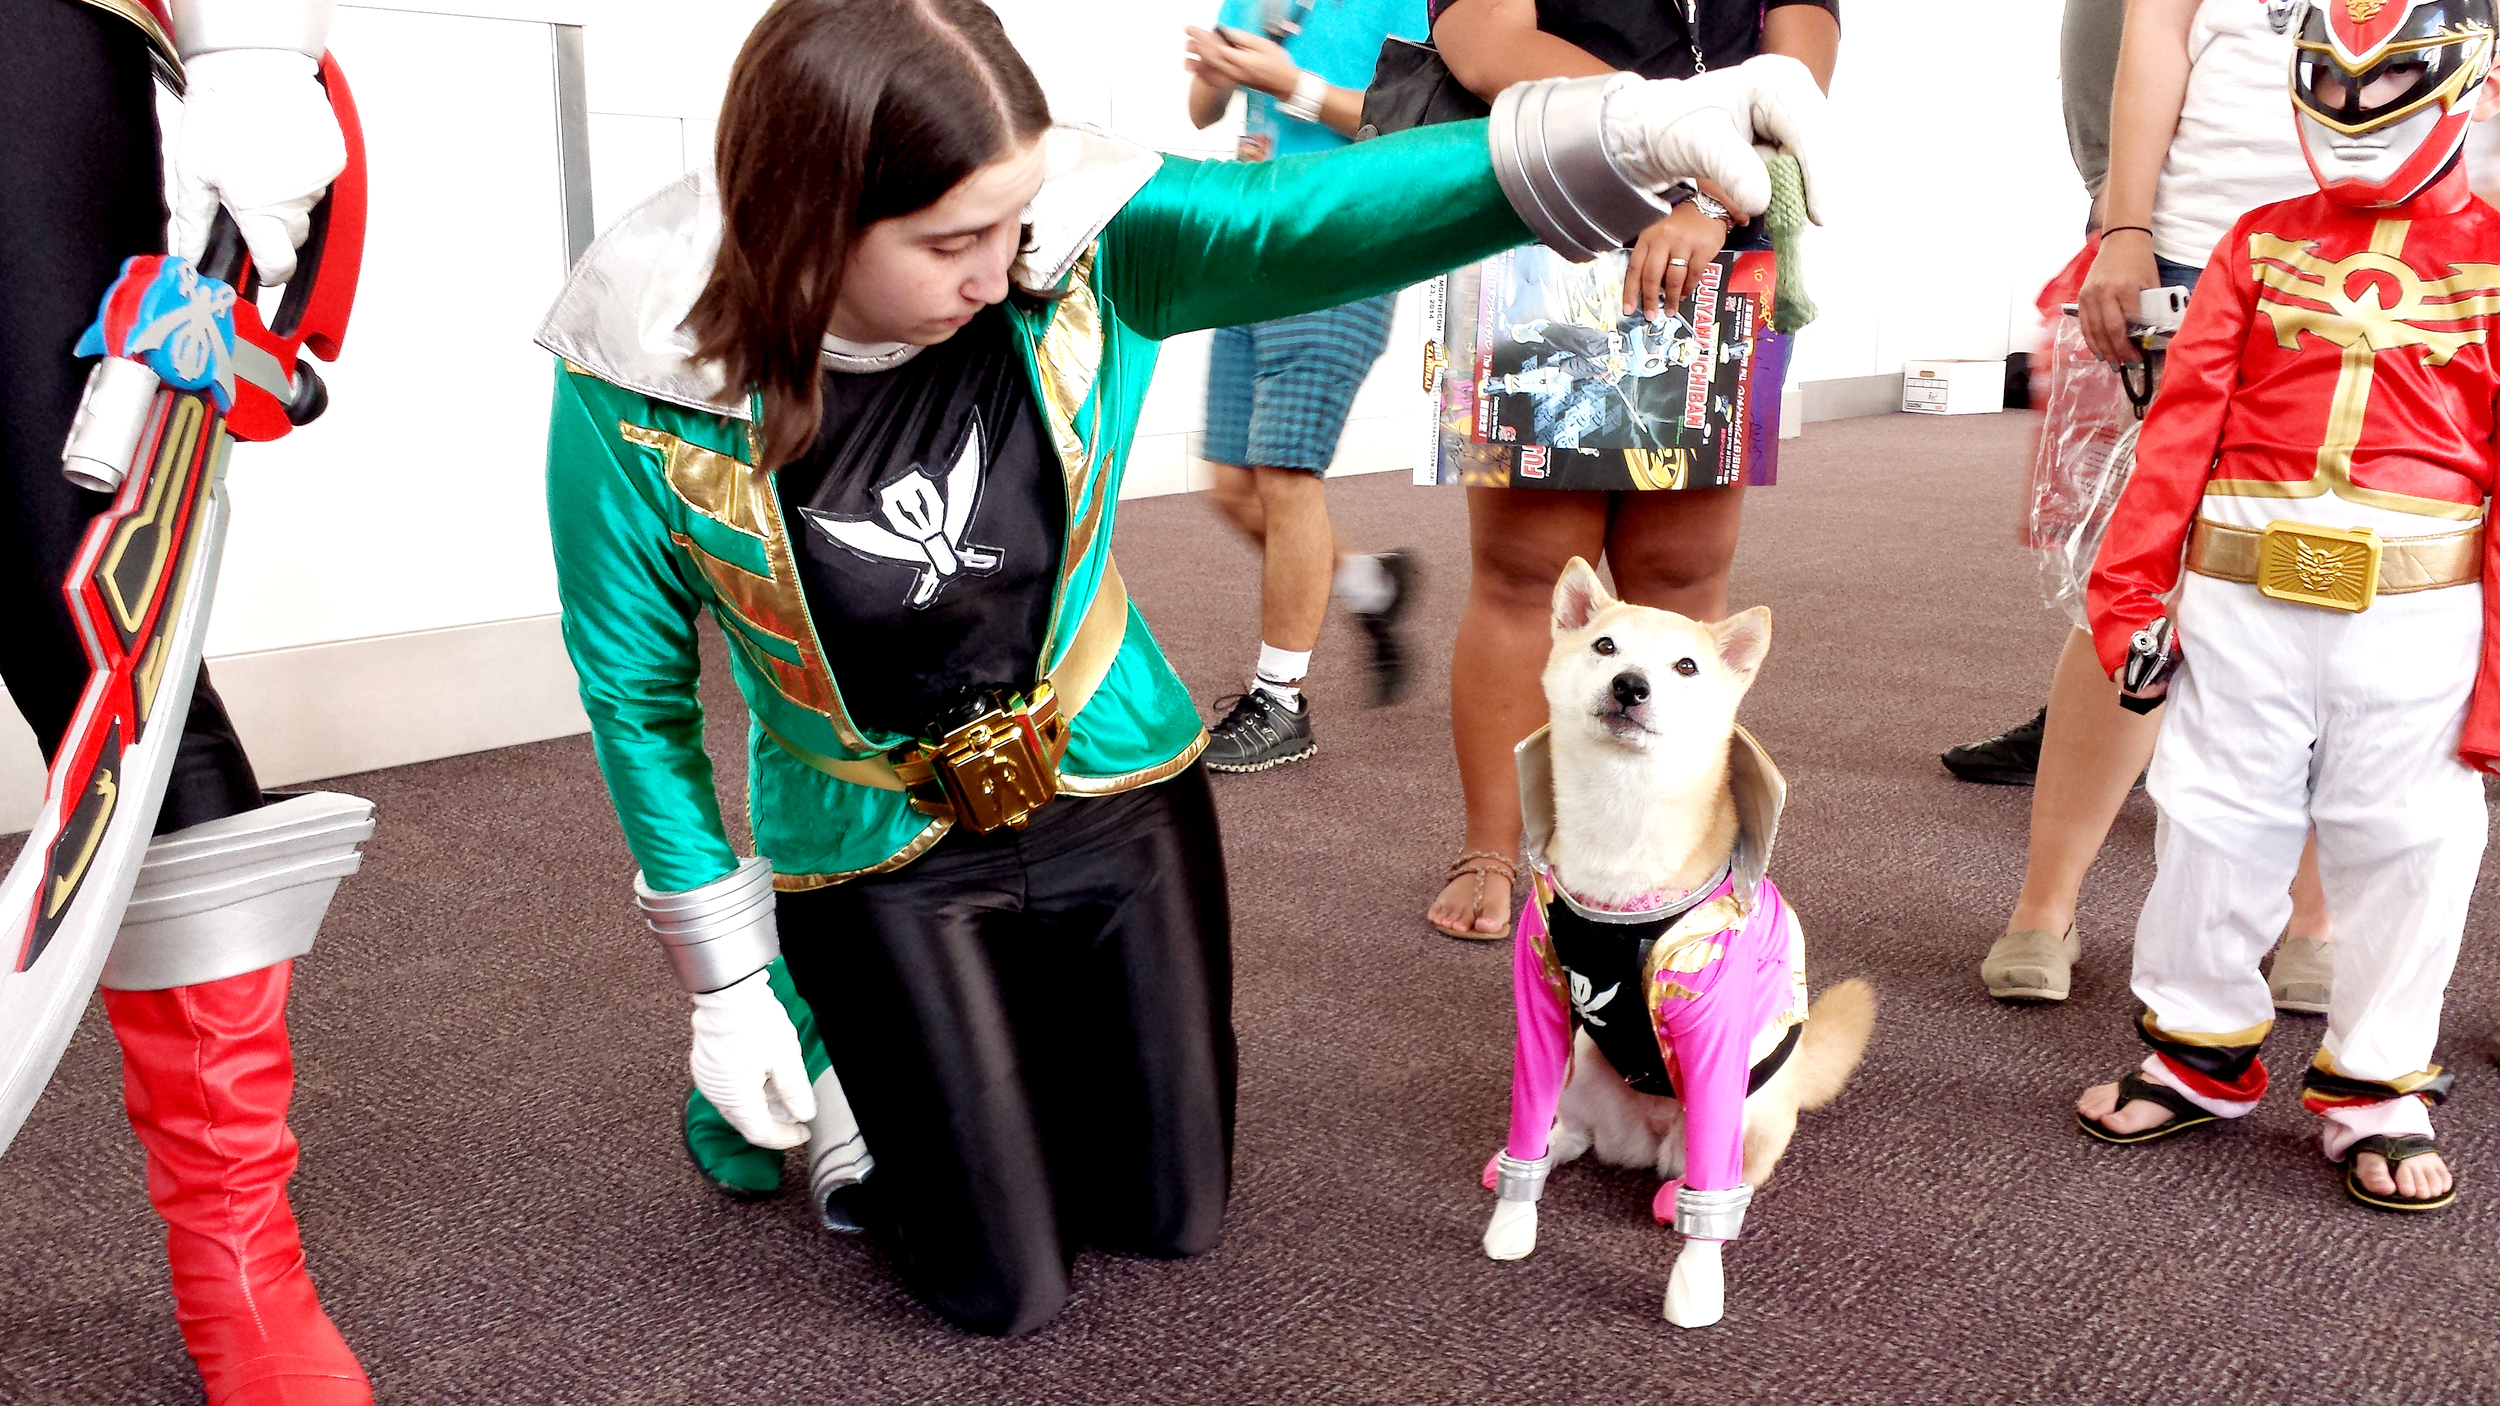 Even this Shiba got into the Gokaiger sprit.